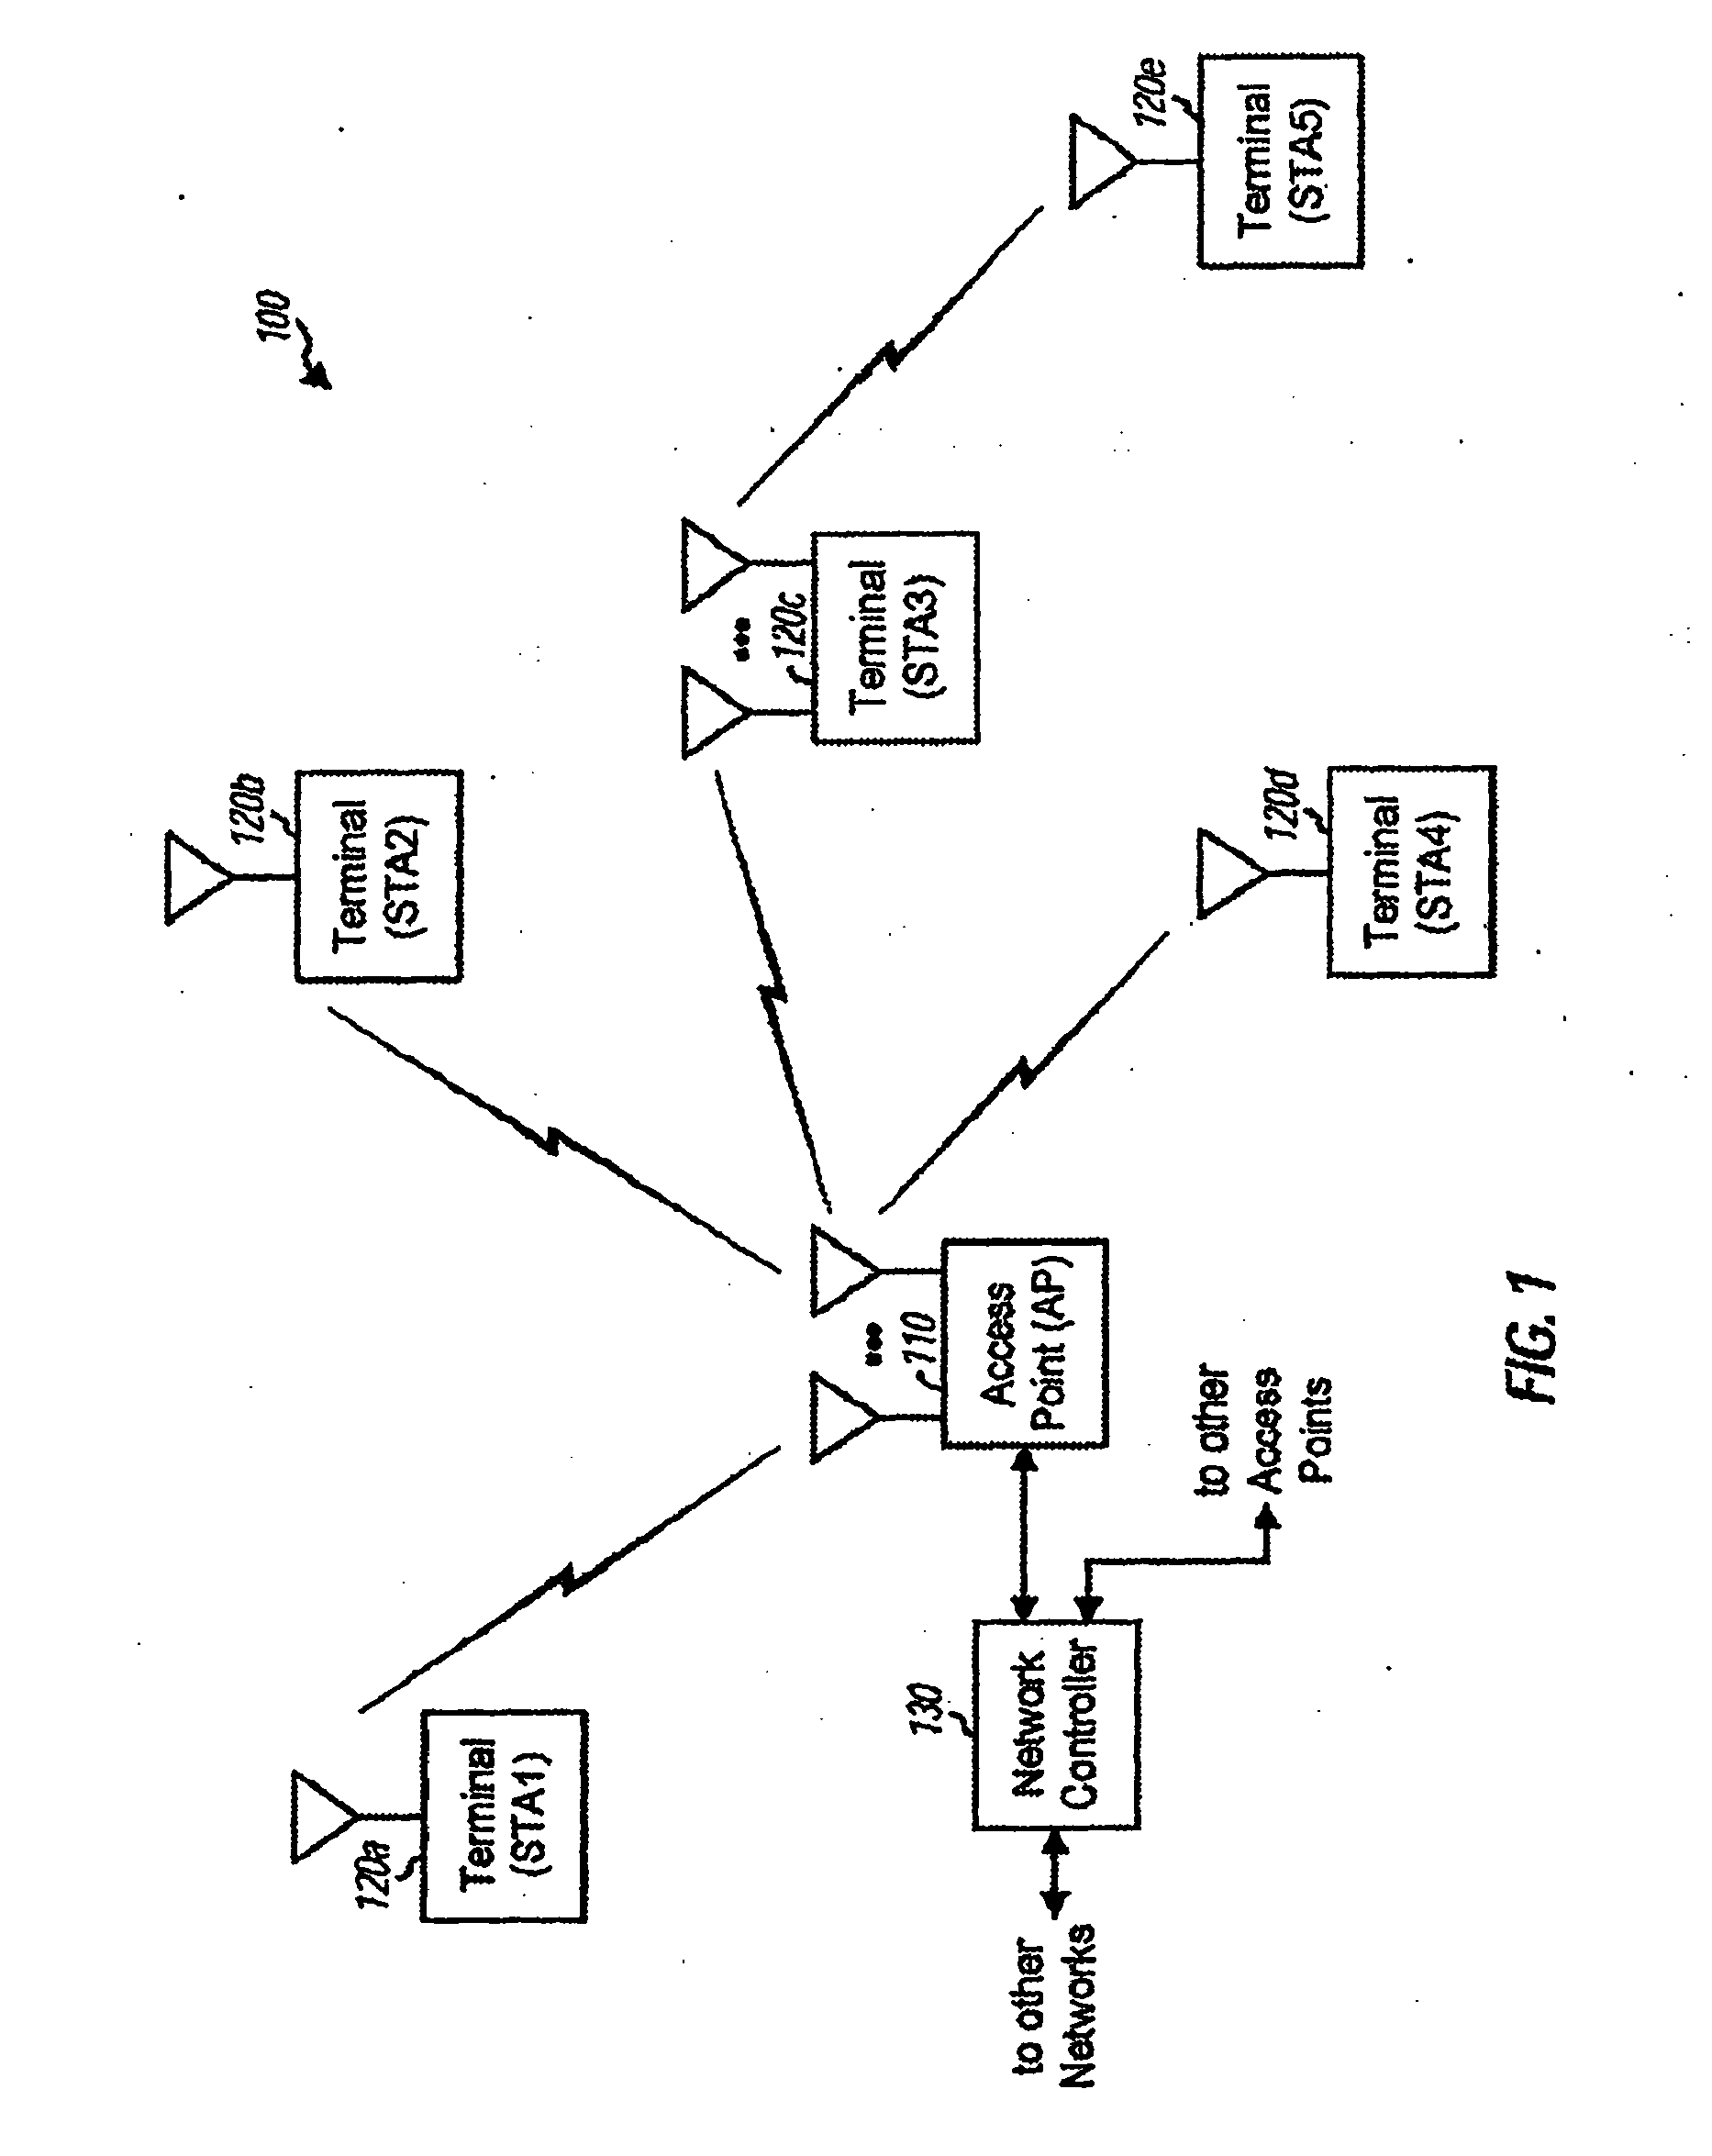 EP1983705A1 - Method and apparatus for scheduling in a